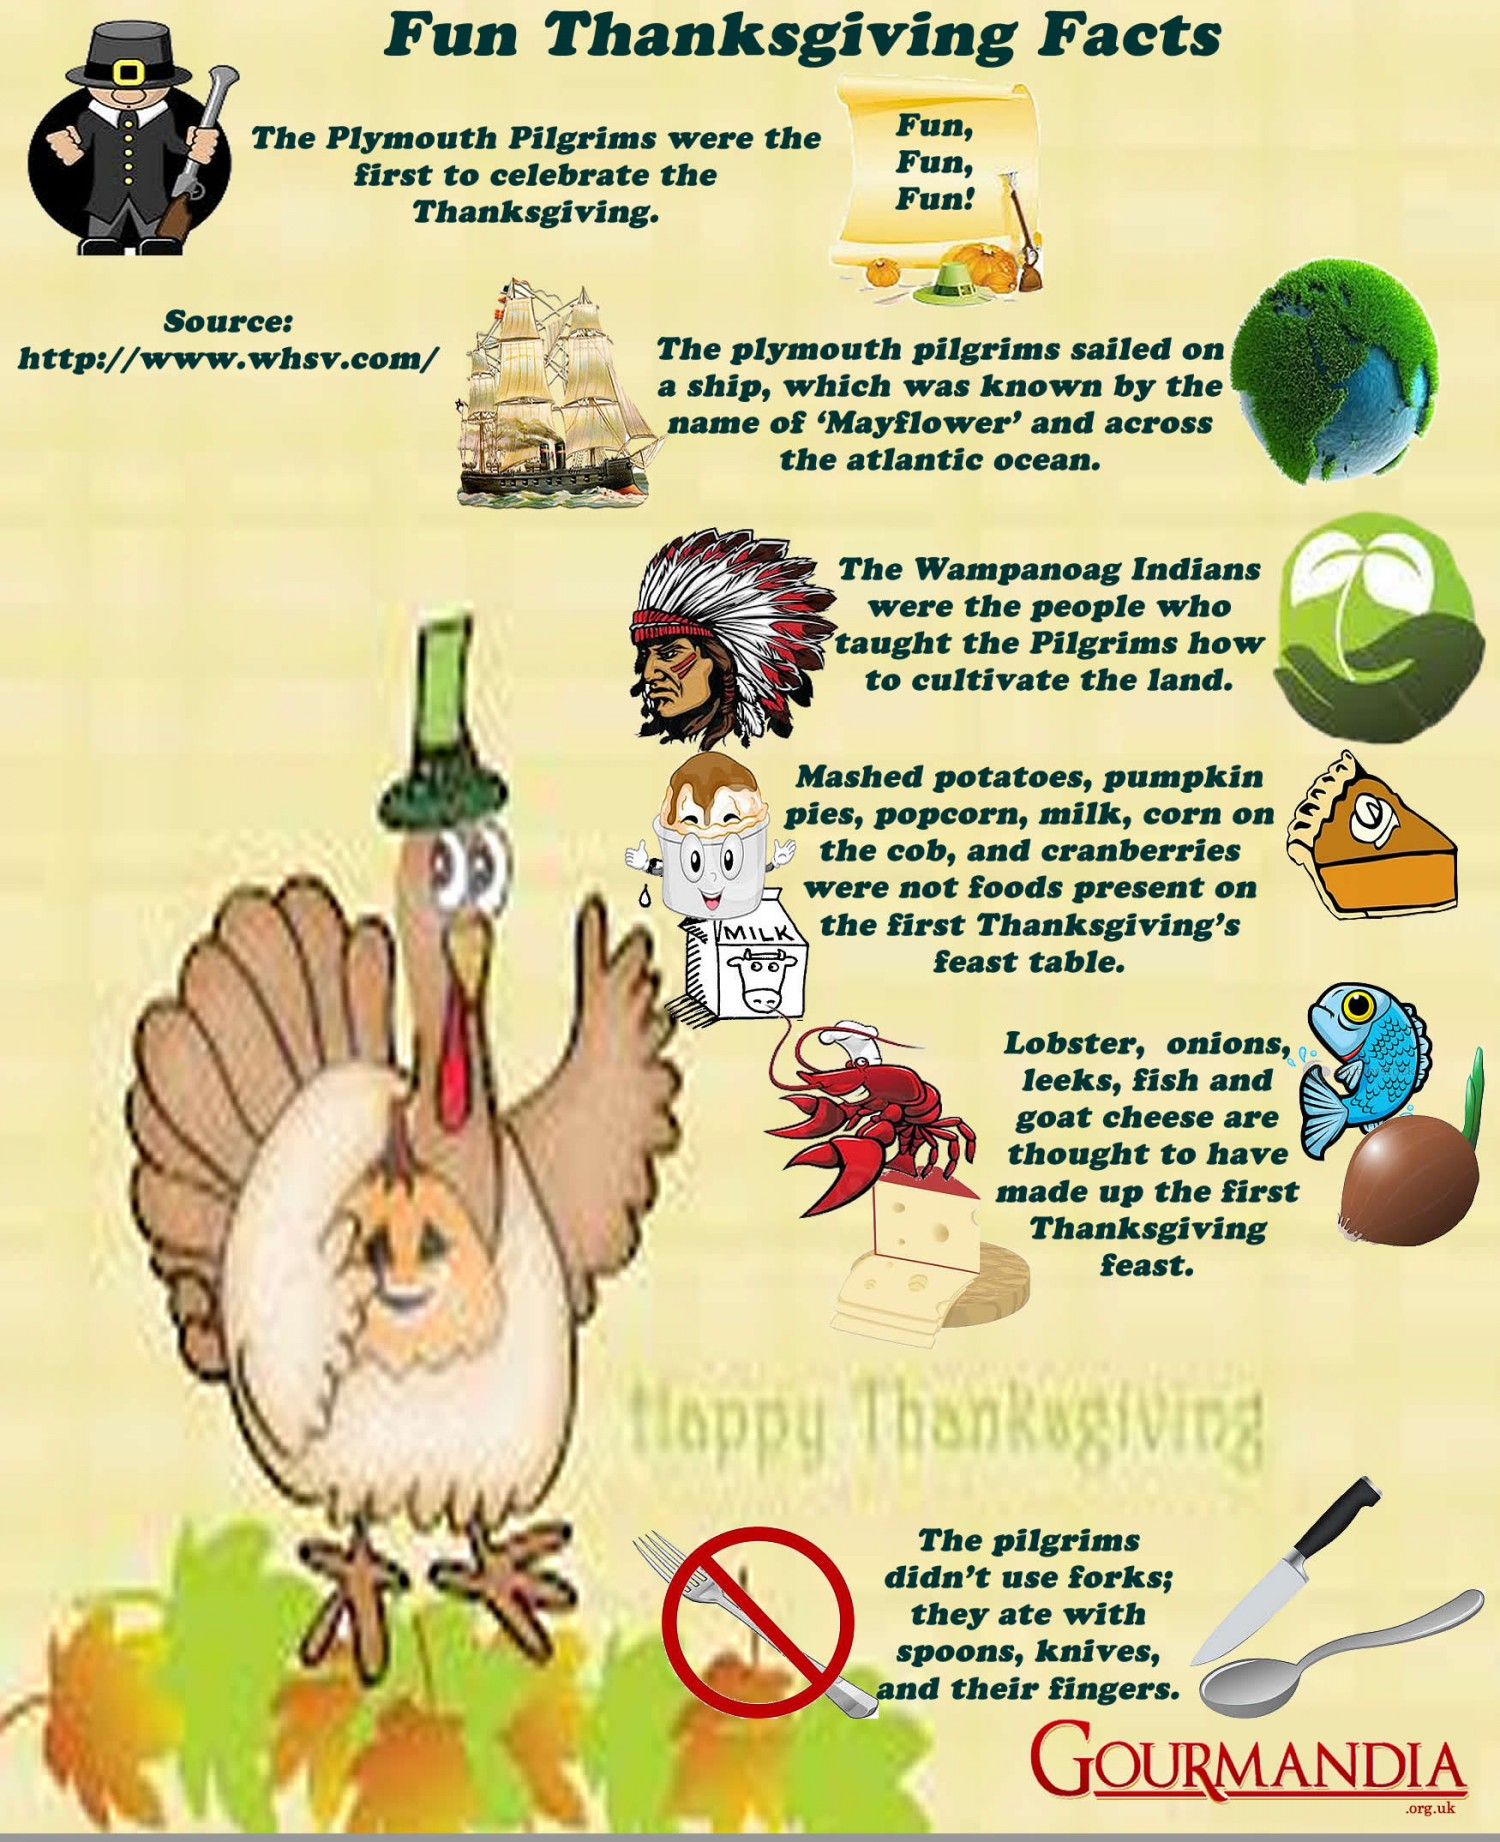 Fun Thanksgiving facts and trivia